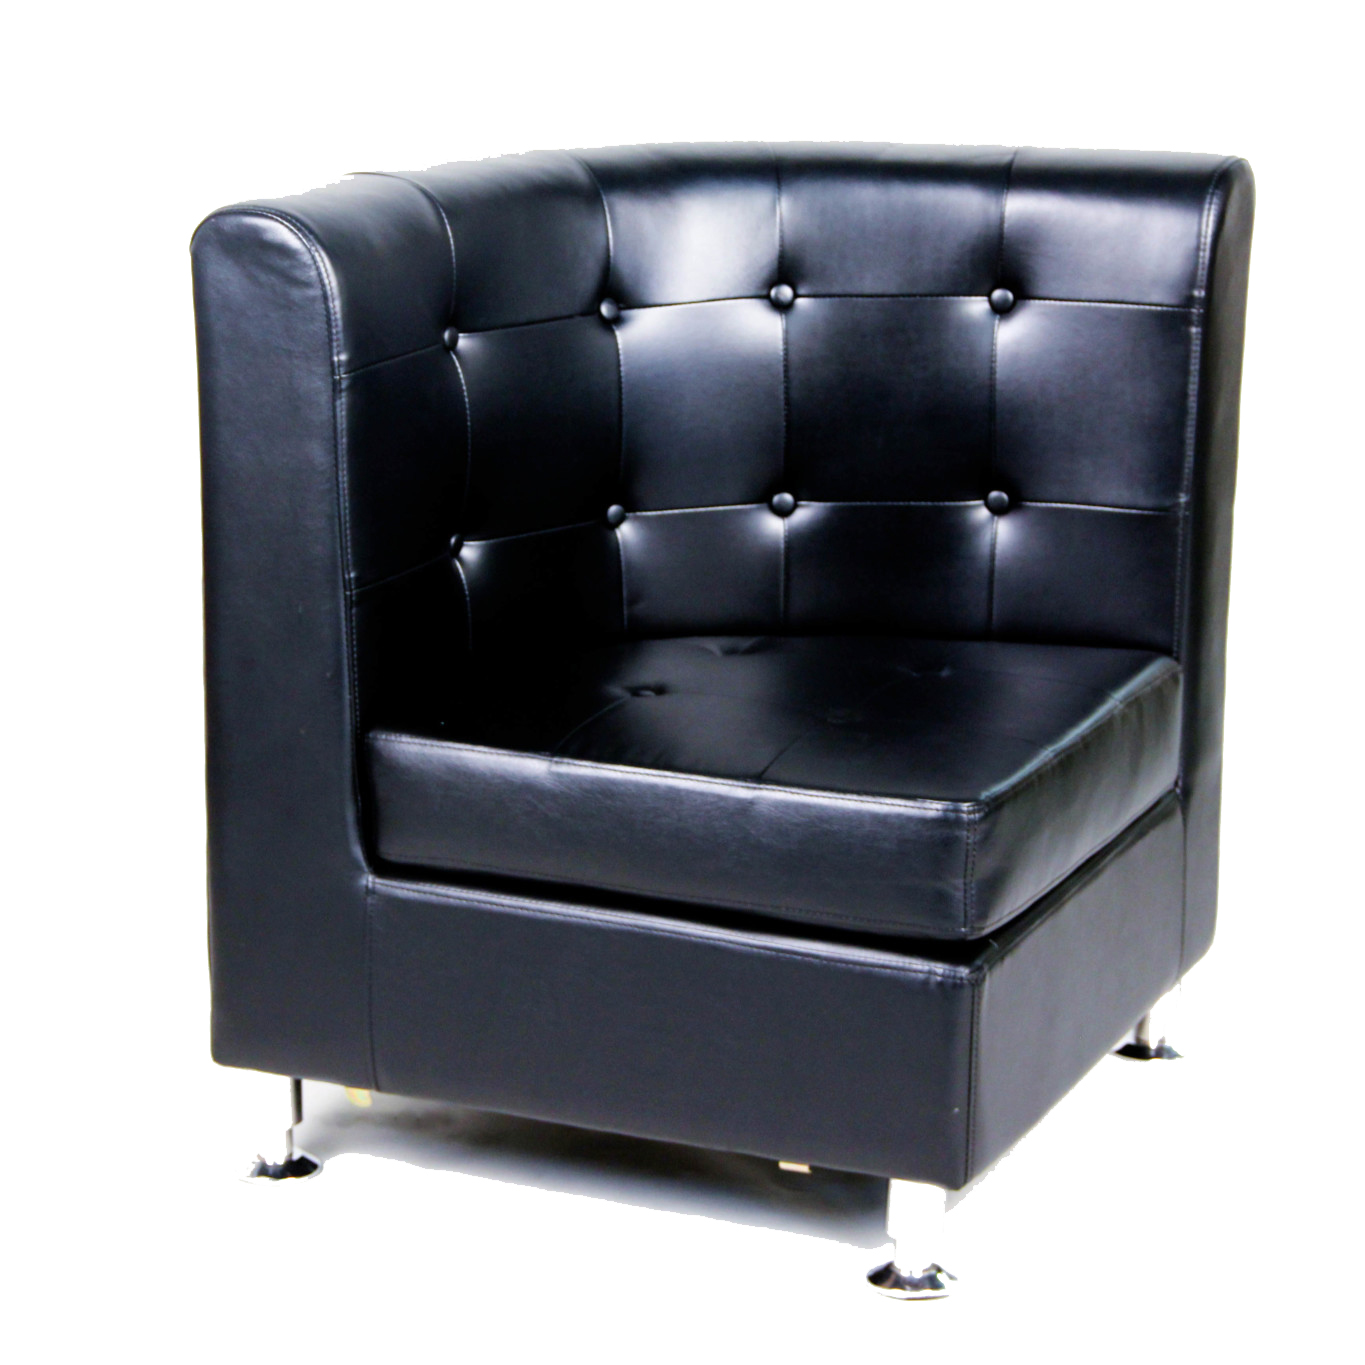 Round Corner Chair Rounded Black Tufted Chairs Corner Seat Peter Corvallis